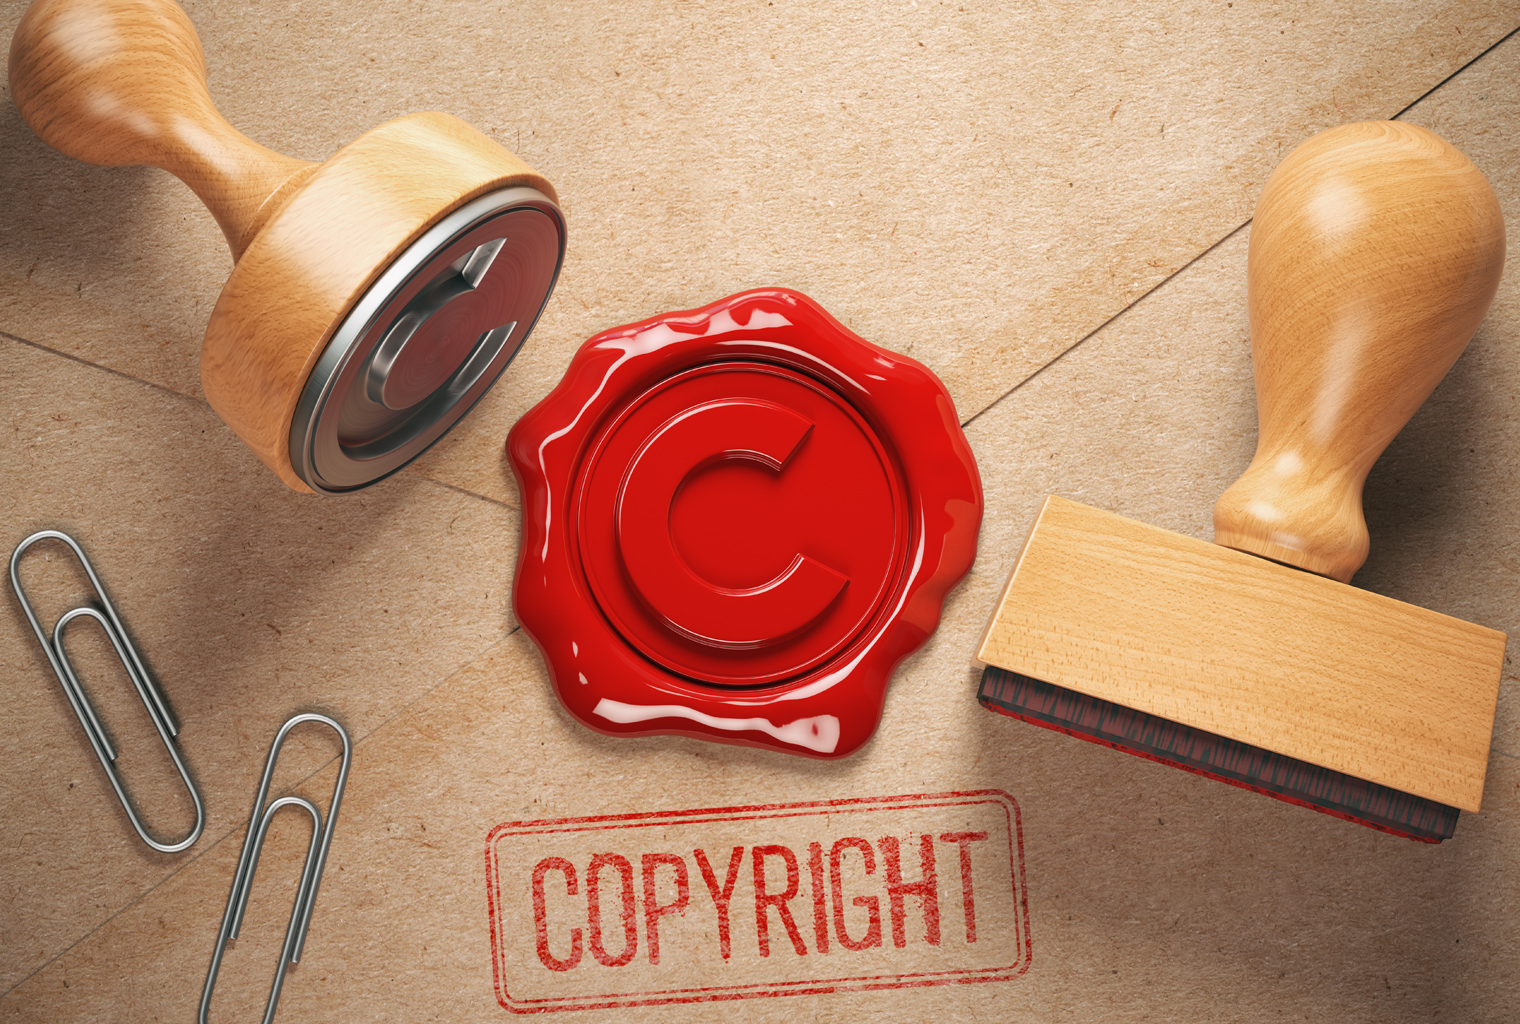 US Copyright Office Responds to Craig Wright's Bitcoin Registrations